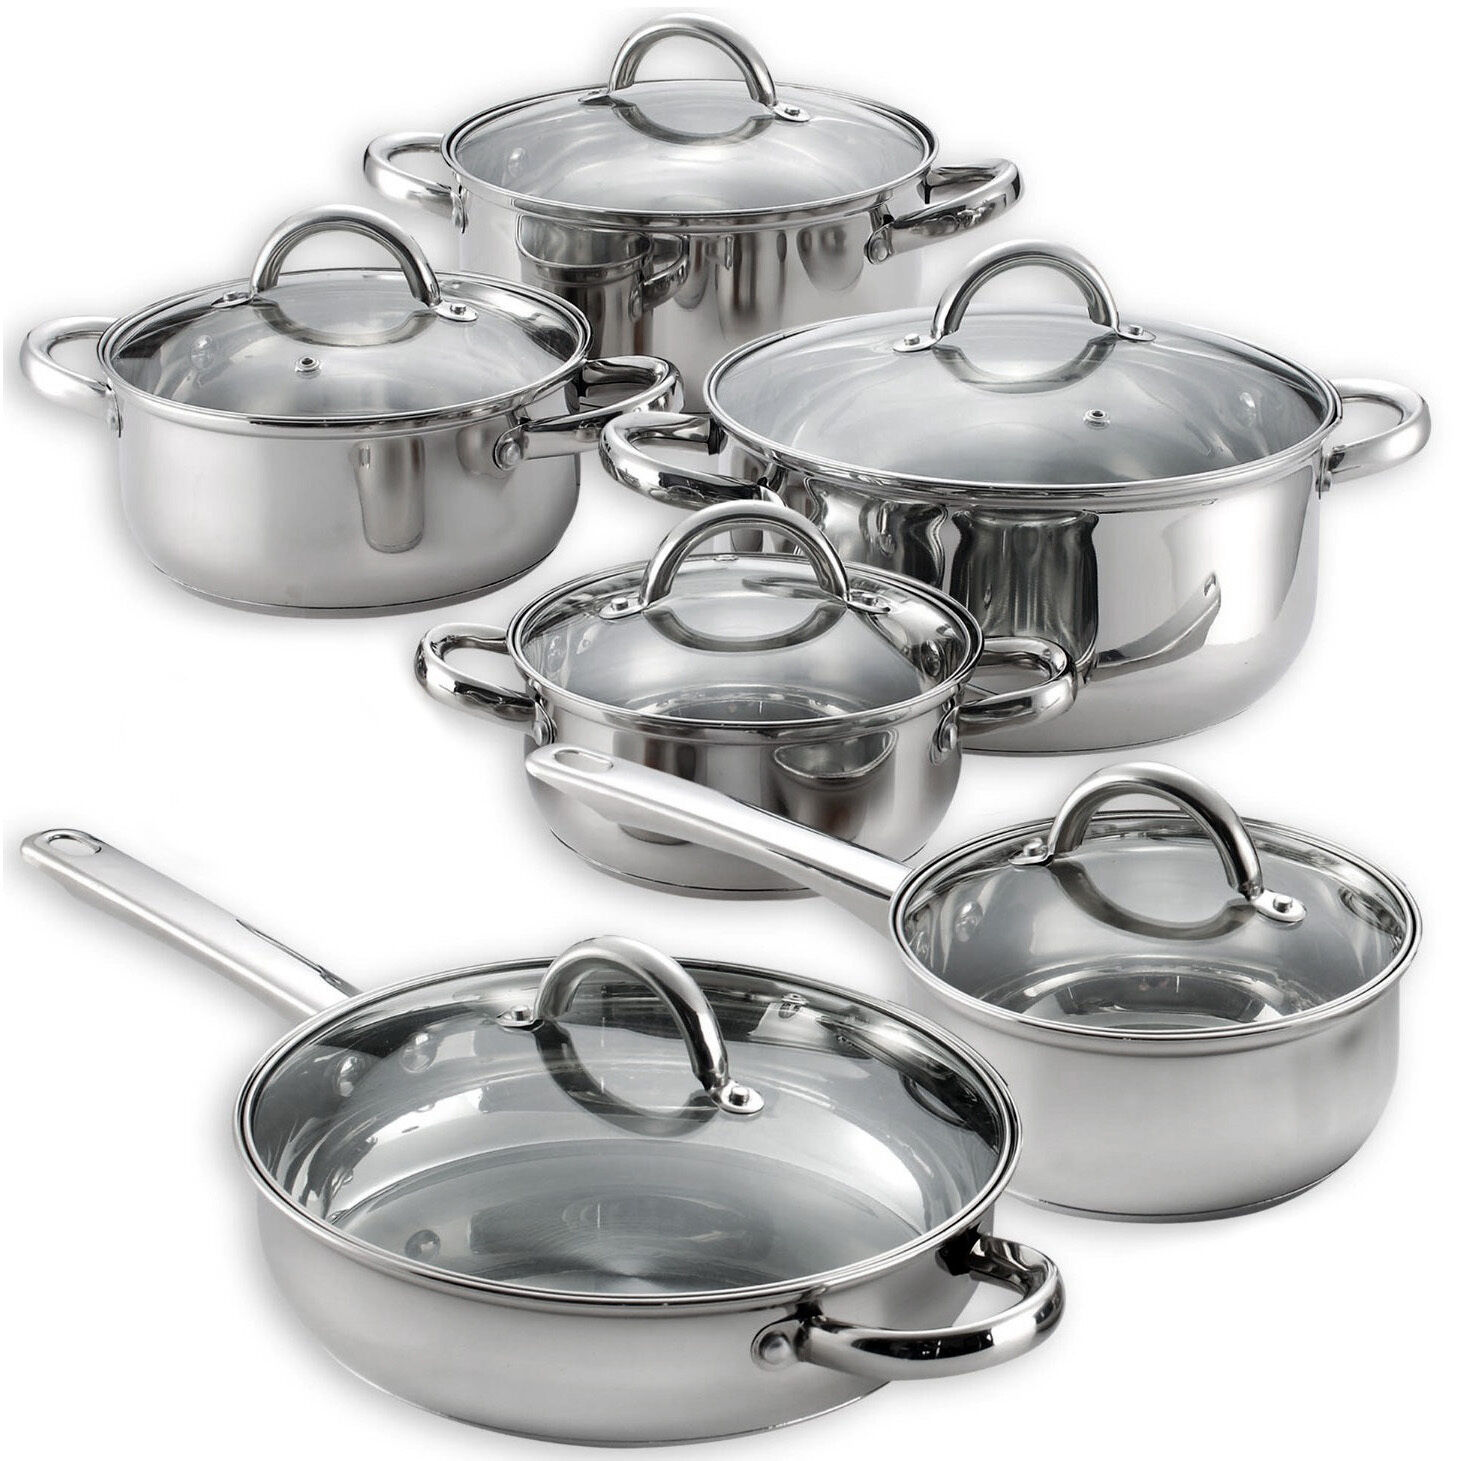 Cooking Pot Heim 39s 12 Pieces Cooking Pots And Pans Kitchen Stainless